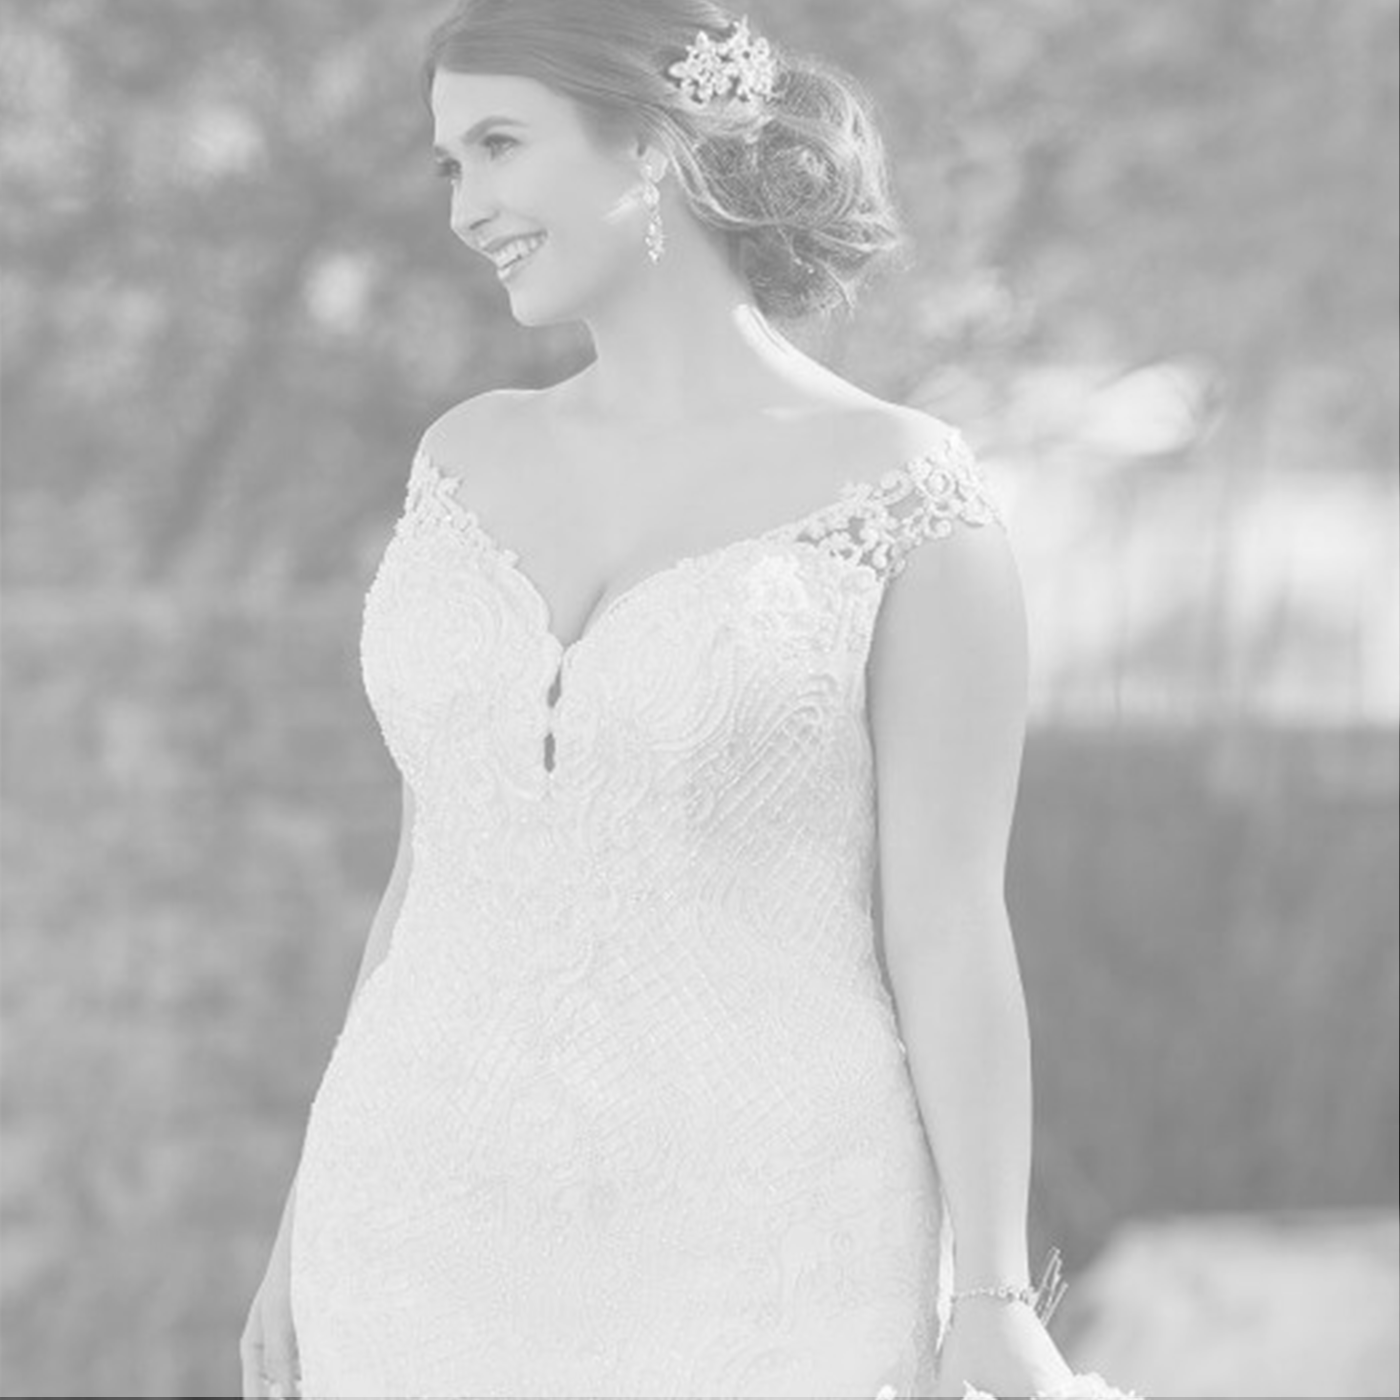 EveryBody / EveryBride by Essense of Australia - gorgeous styles in every shape and silhouette. We love that the bridal industry just got a little more size inclusive. Let us style you from head to toe in a look that will make you shine!starting at $1,500